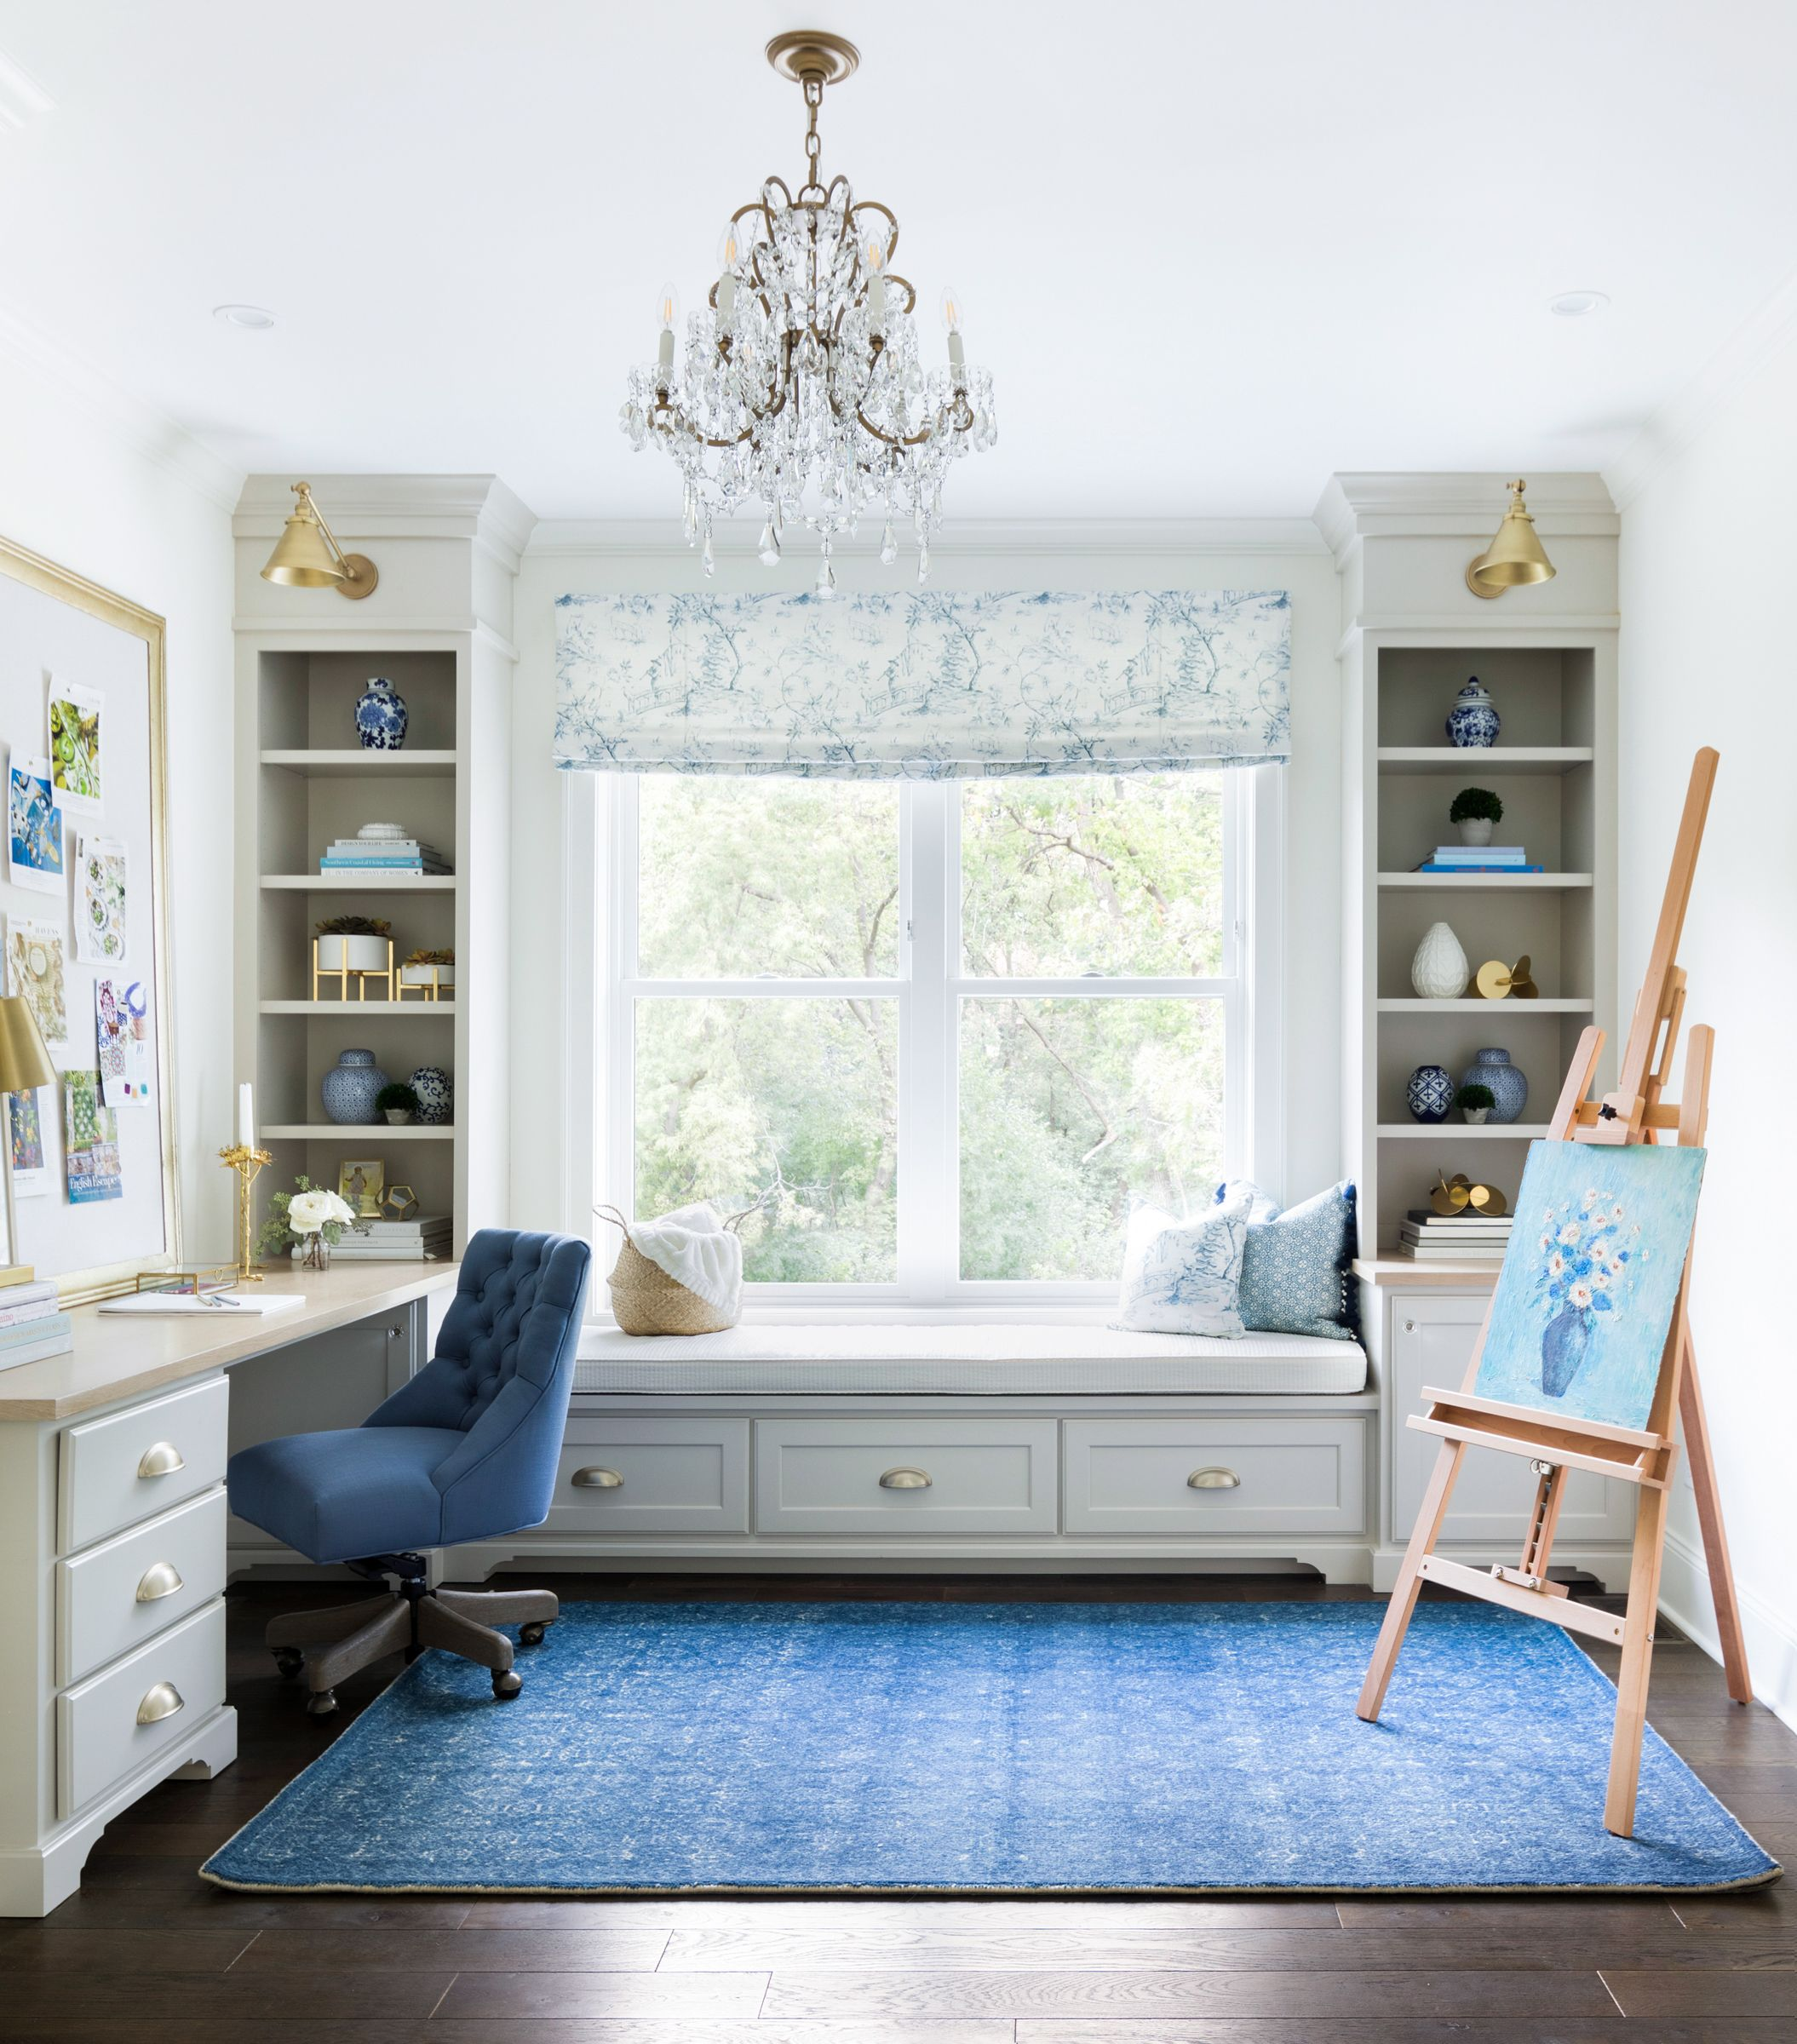 The Willow Lane House Project Reveal Part II | Bria Hammel Interiors